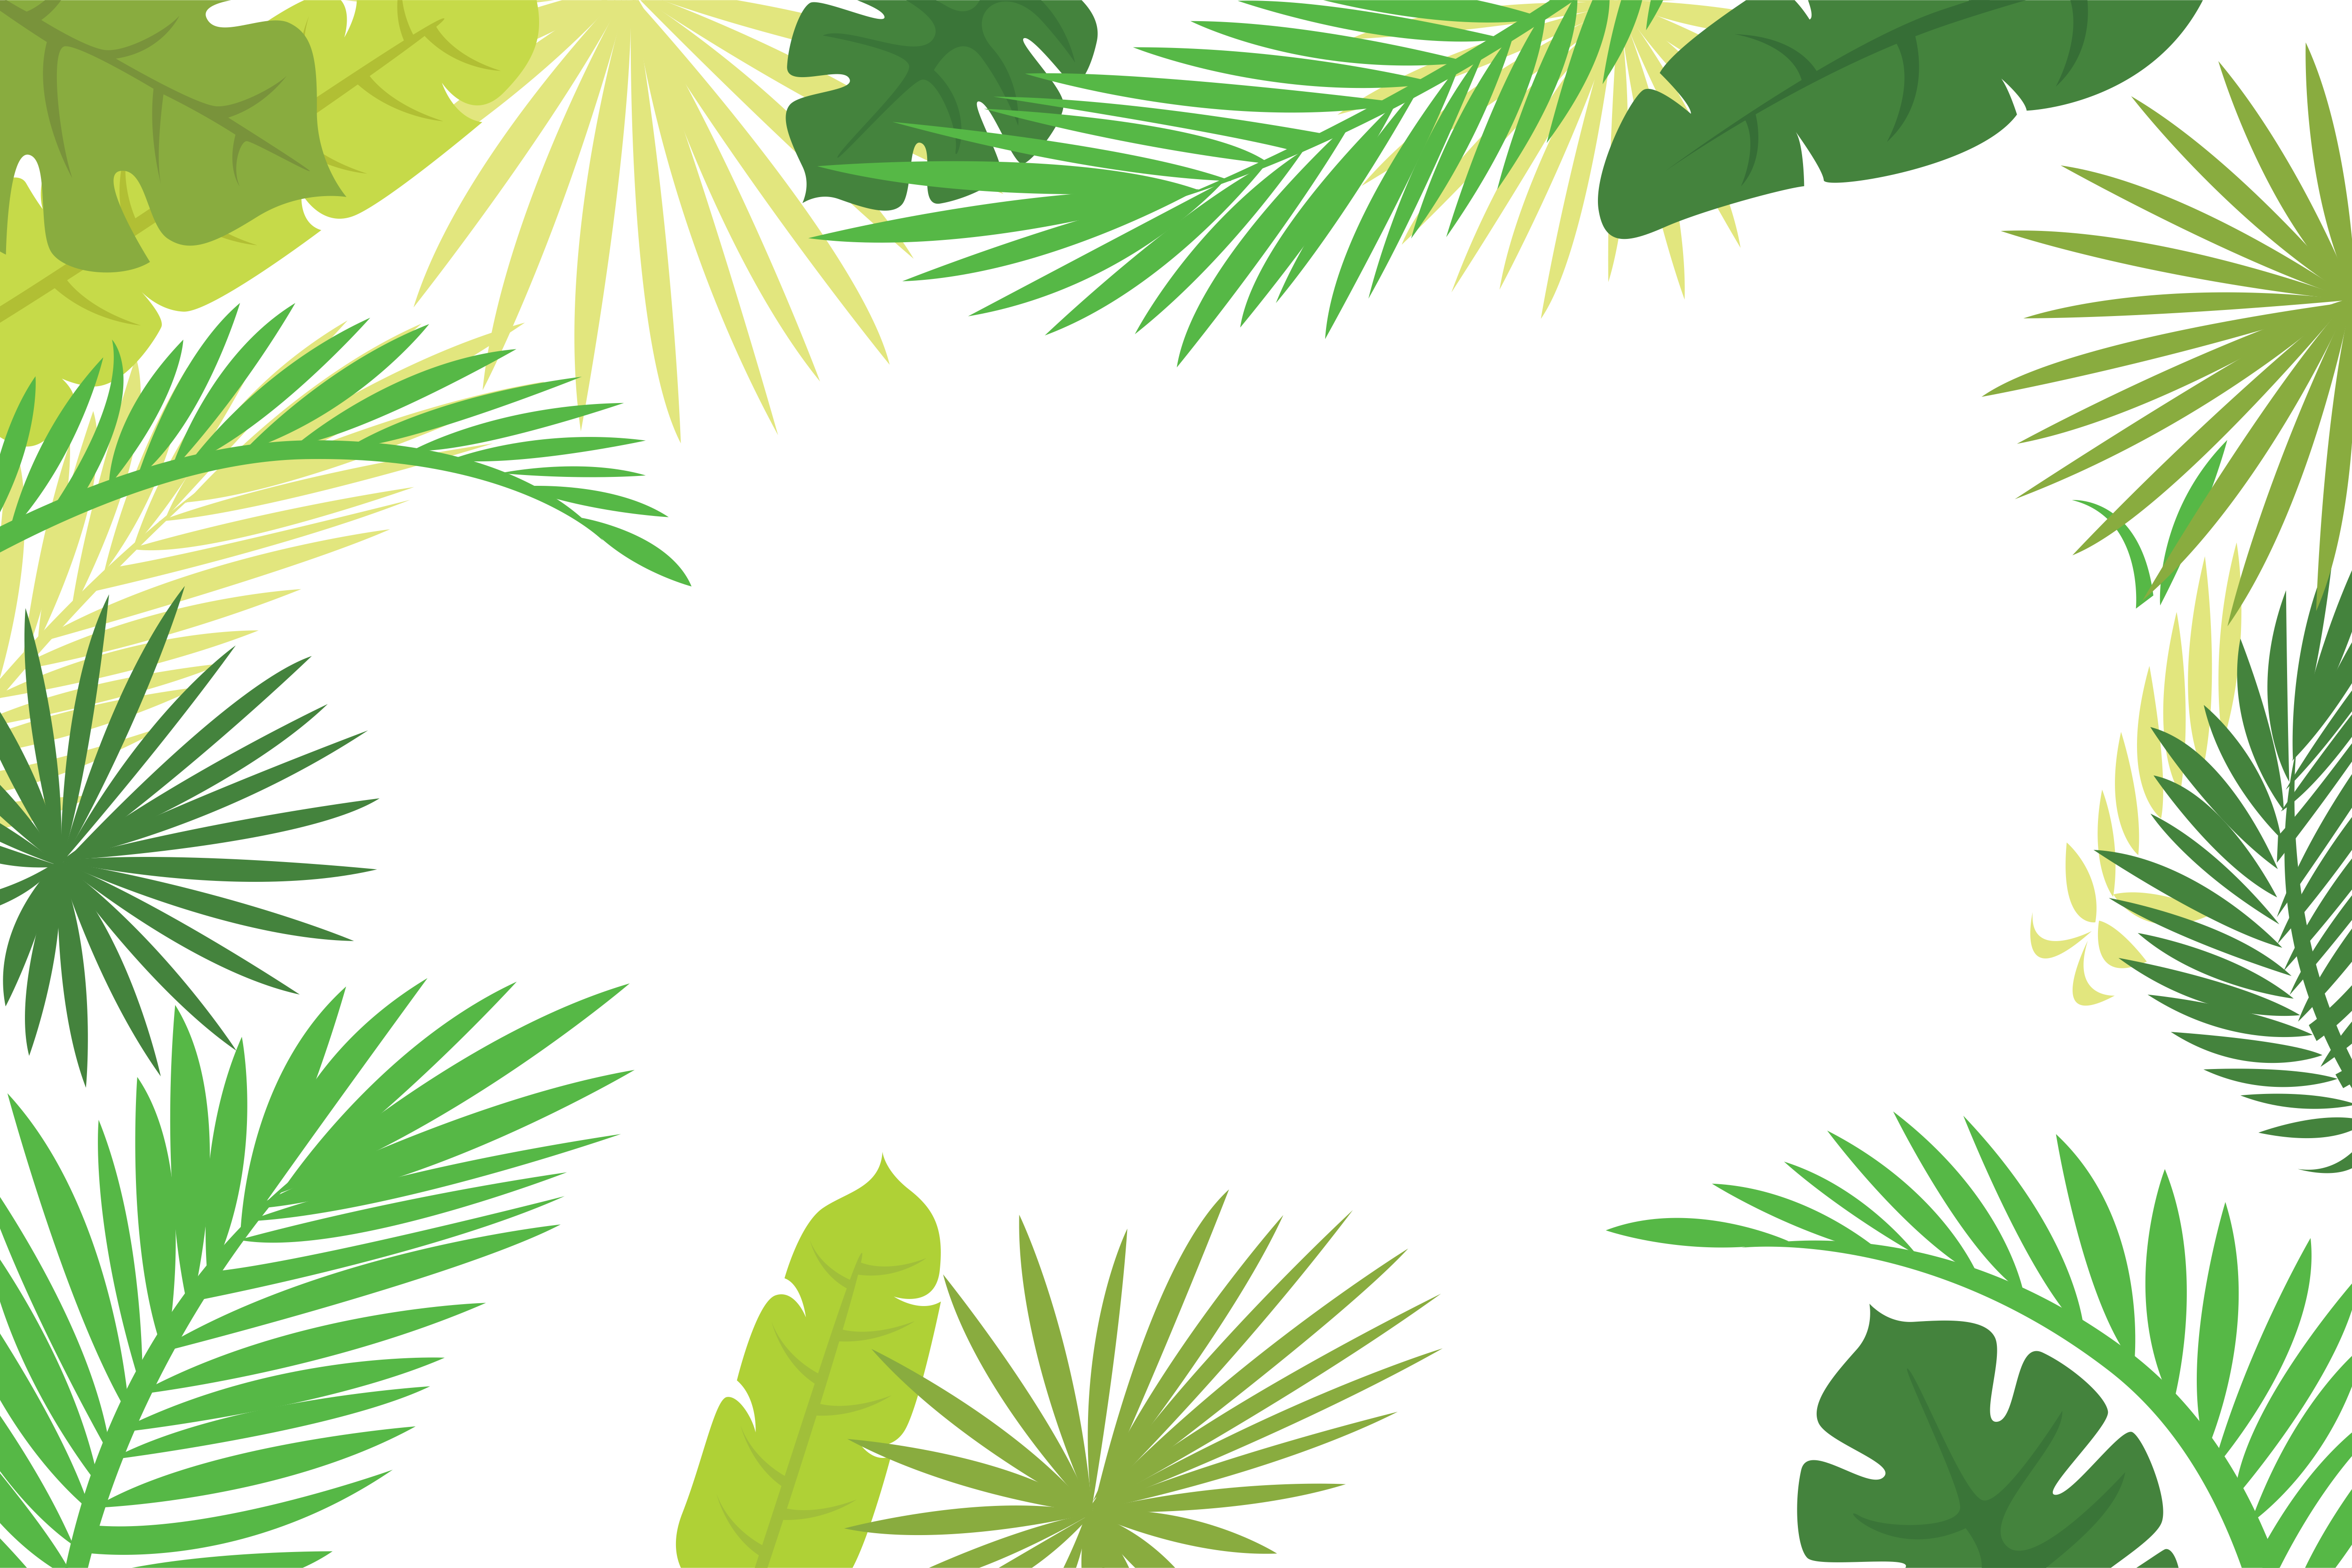 Palm leaves border clipart images gallery for free download.